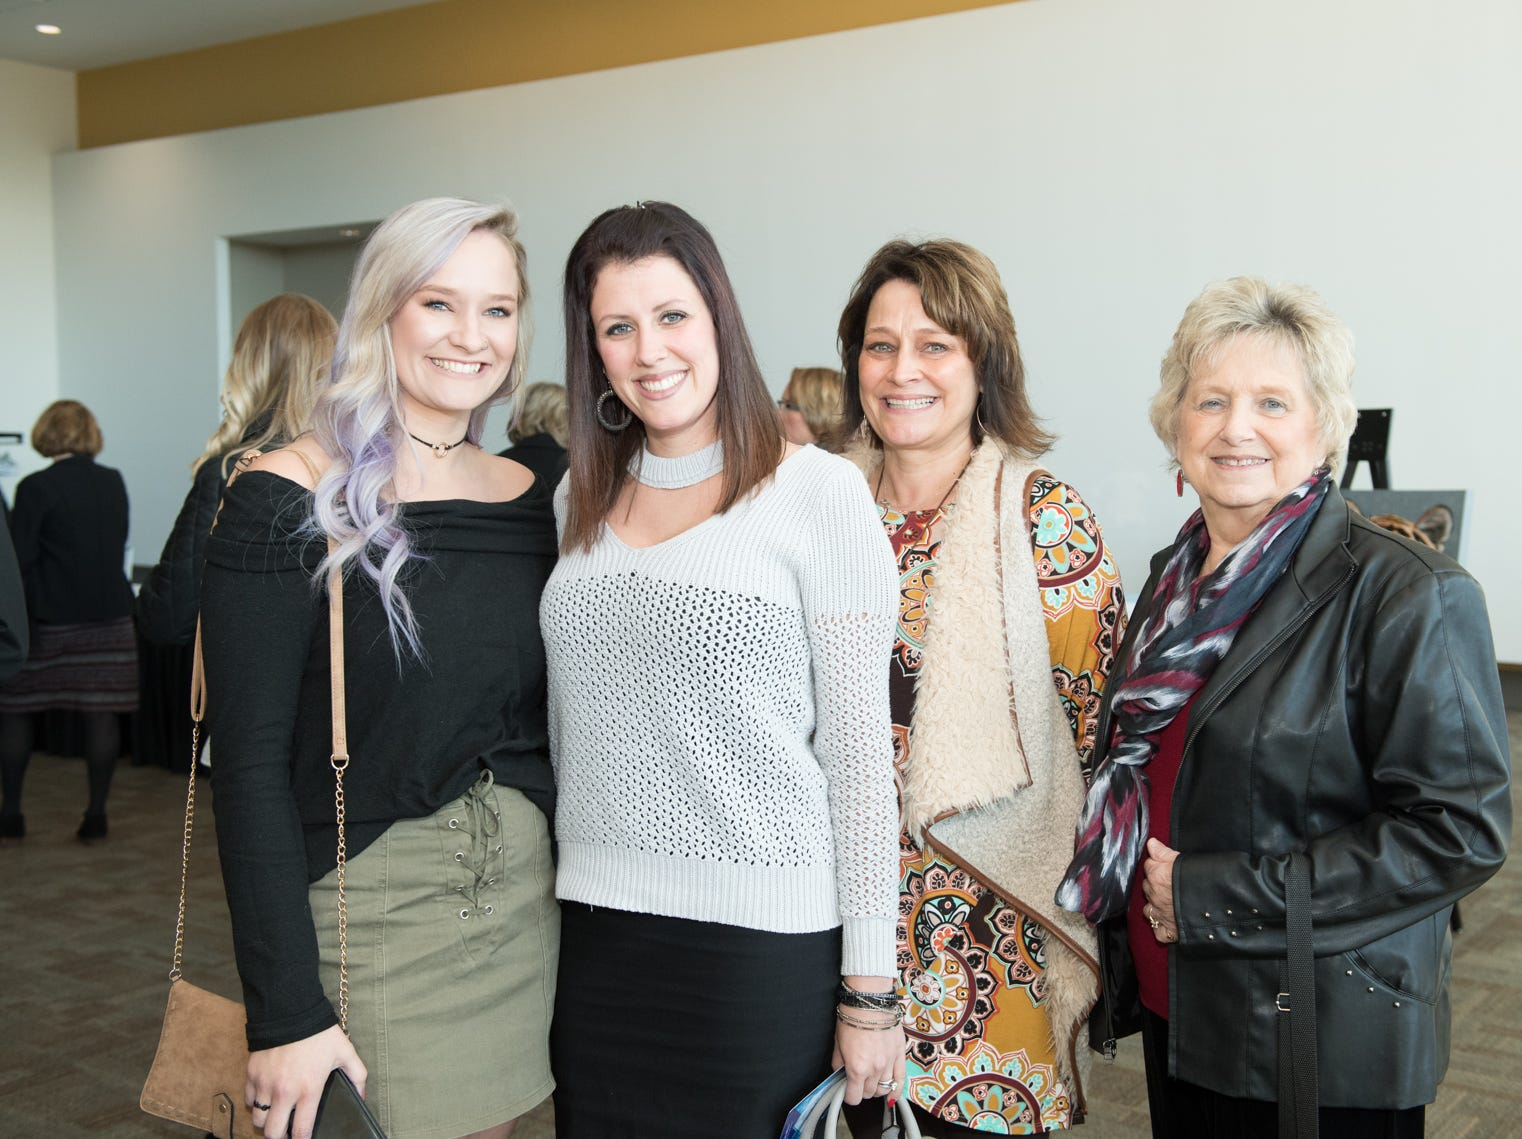 For 18 years, Upstate women have come together to celebrate a holiday tradition that brings so much more than holiday cheer. The 2018 Meyer Center Ladies Holiday Luncheon was an unforgettable day. The amazing First Lady of Clemson University, Beth Clements, opened the program and guest speaker, Allison Huffstutler, touched every heart in the room with her testimony. The event featured a delicious lunch, celebrity chef drawing, an award winning silent and more. Most importantly, the event brings hope and joy to one hundred Meyer Center students who are living with special needs. TALK Magazine is proud to be the media sponsor for this wonderful event!